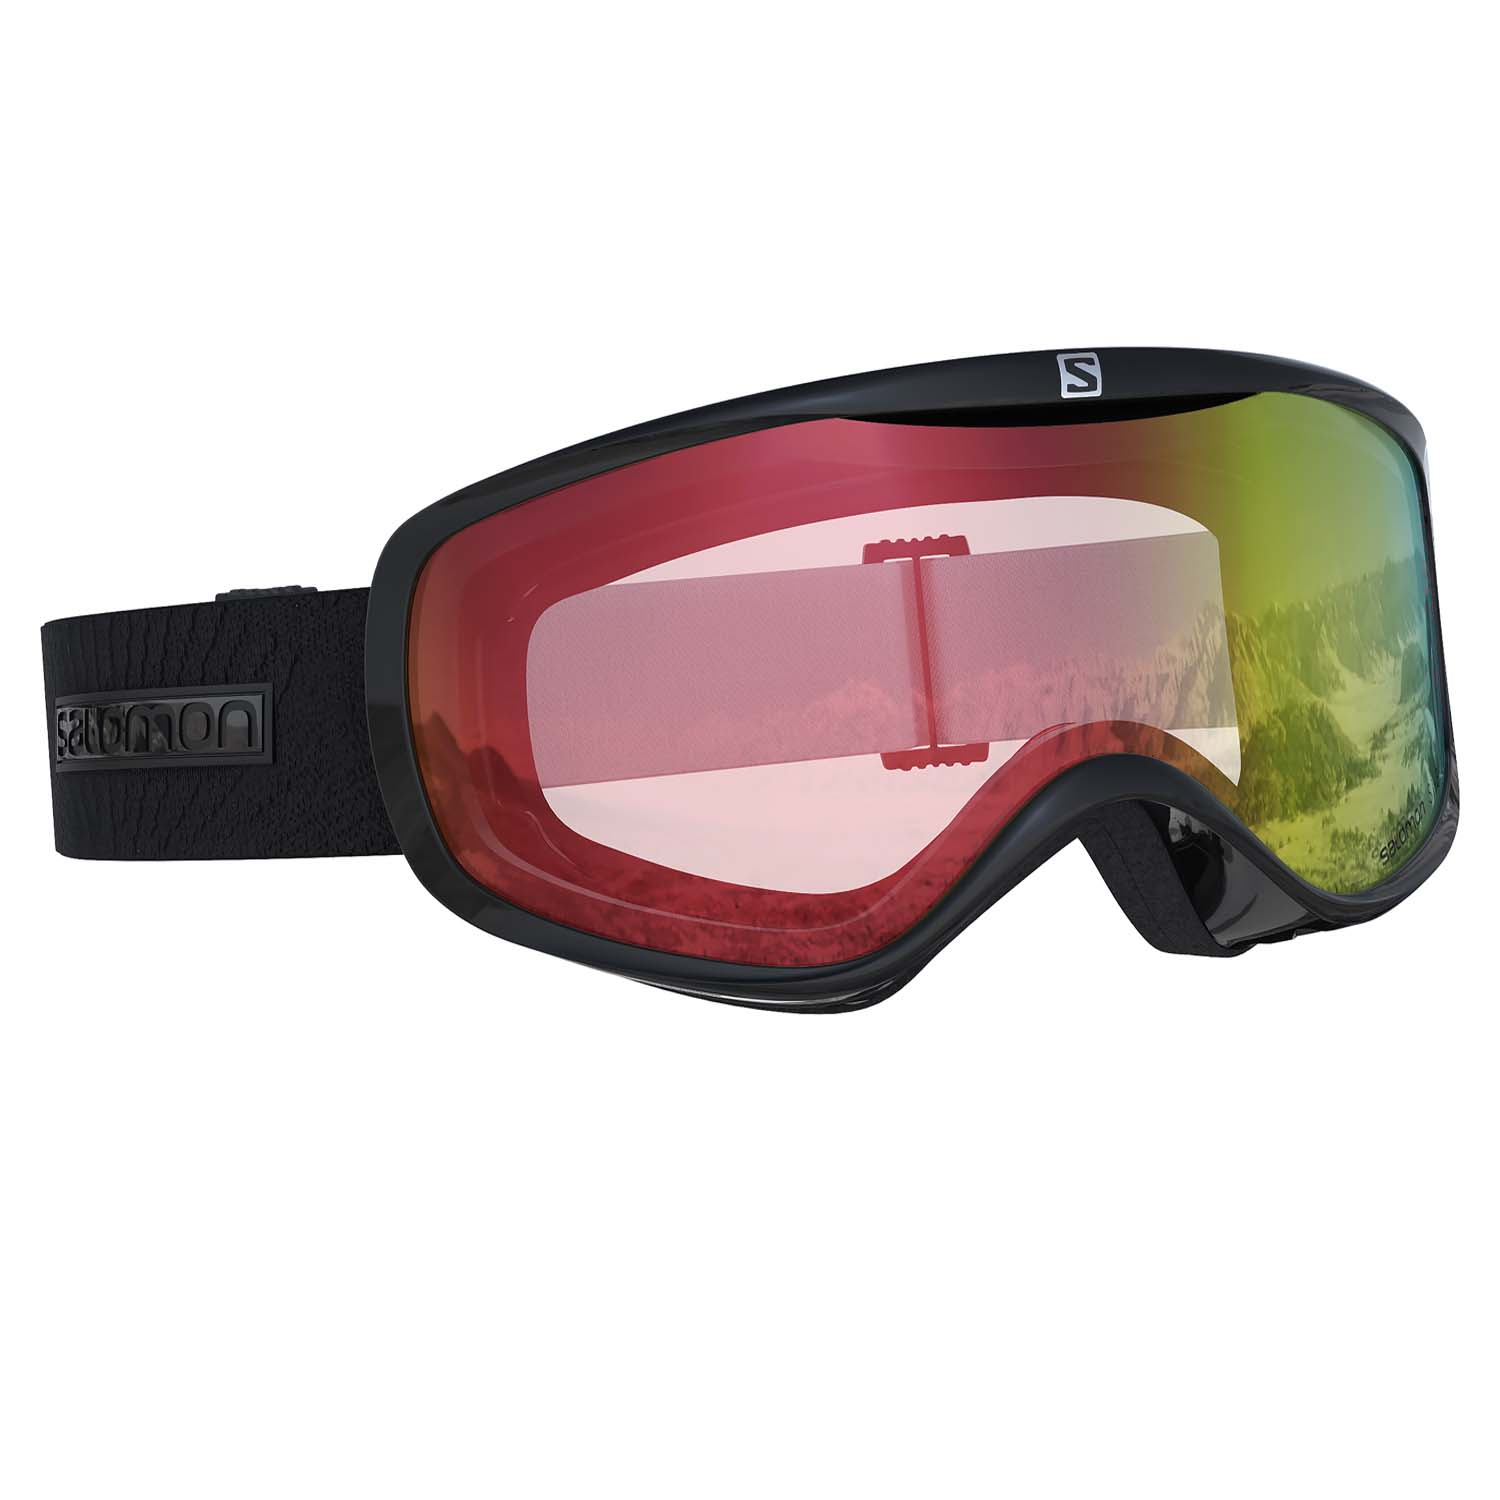 Salomon Sense Photo Goggle Black/All Weather Red Lens 2020